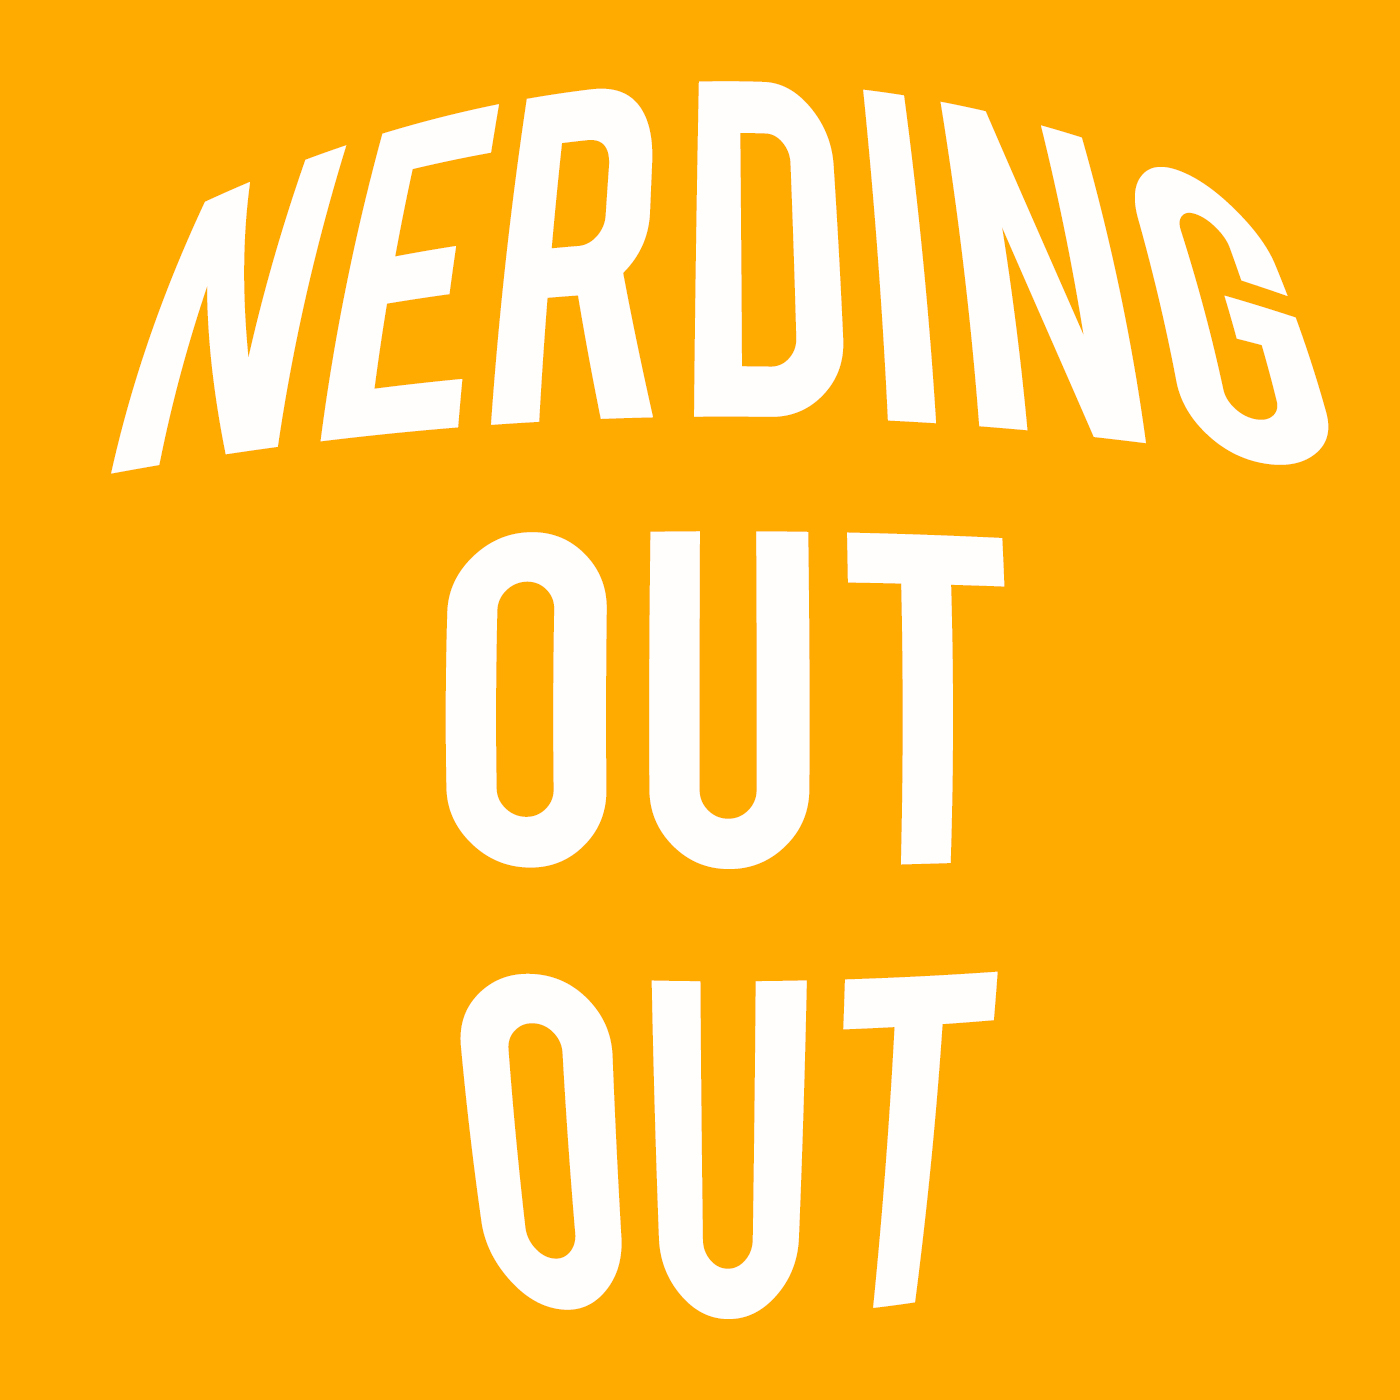 Nerding Out Out - Another Tech Podcast